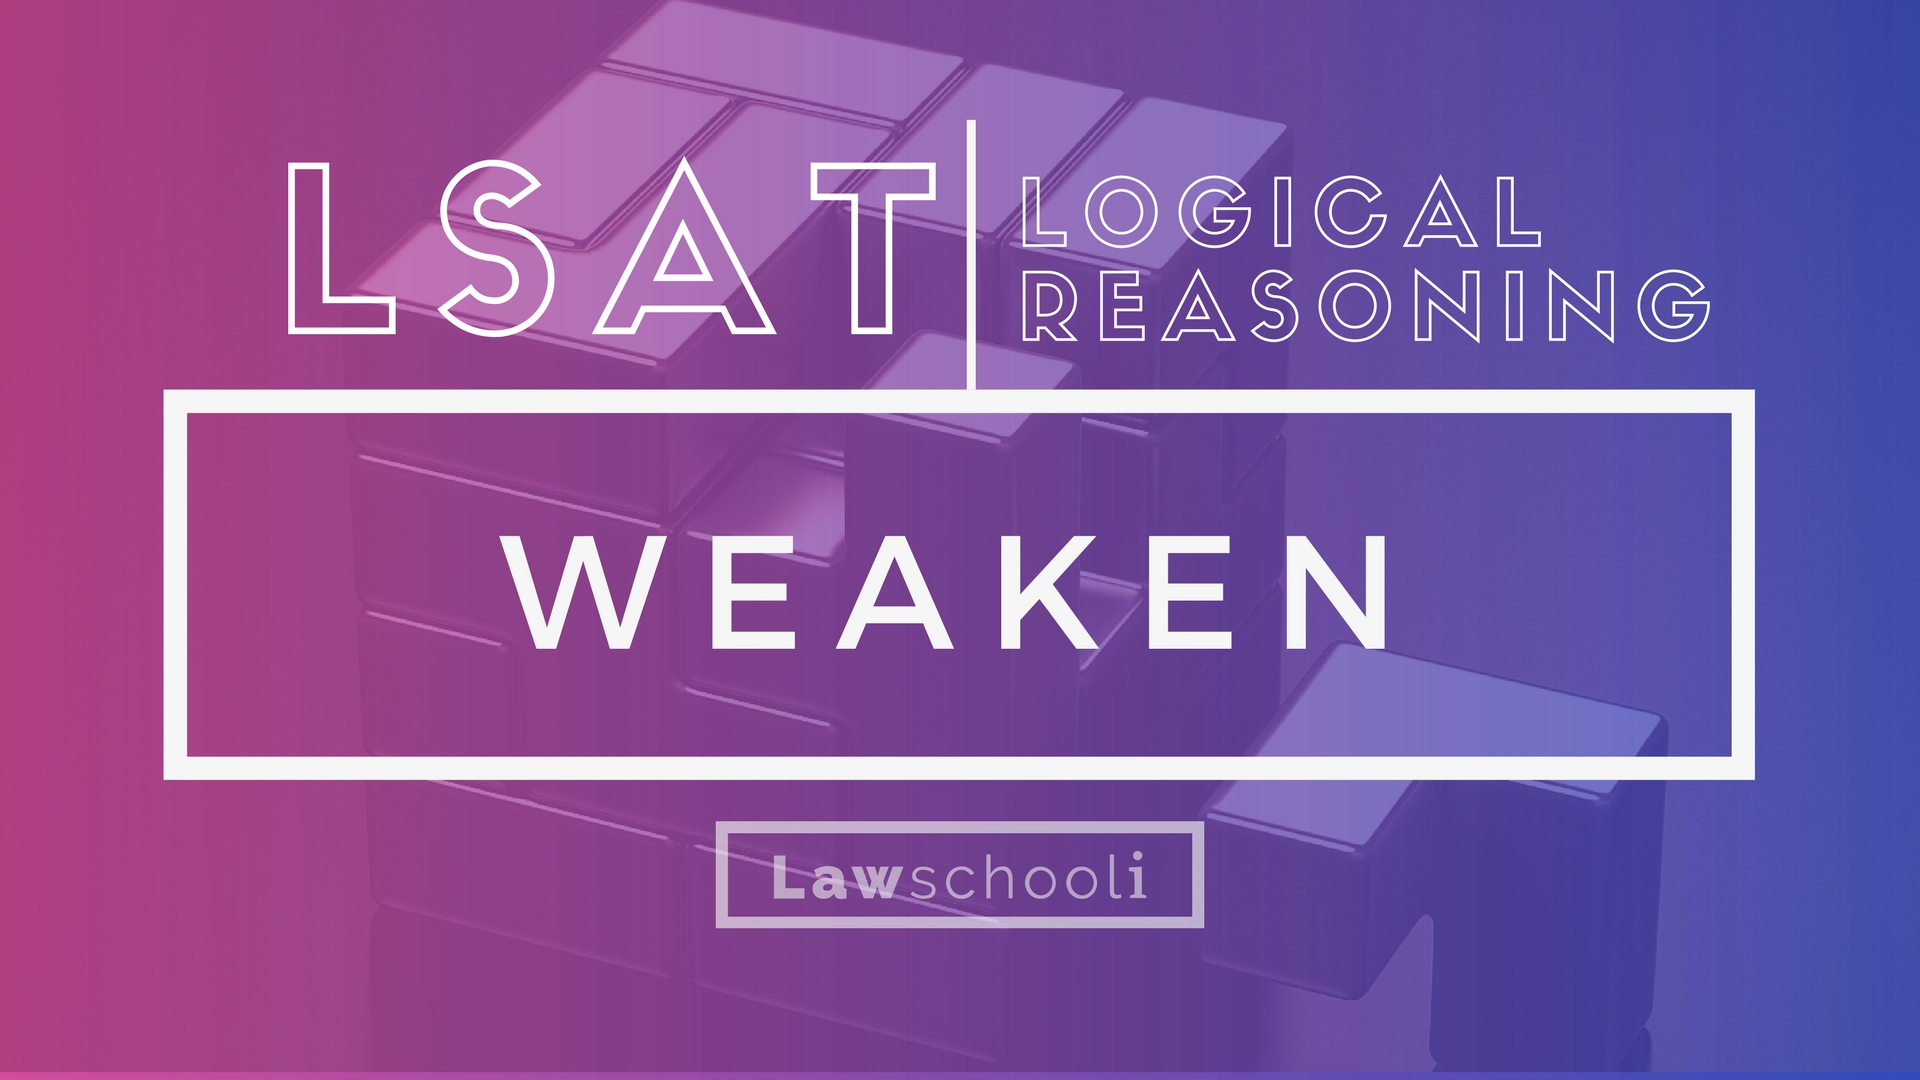 How to solve lsat weaken questions lsat logical reasoning lr how to solve lsat weaken questions logical reasoning malvernweather Choice Image